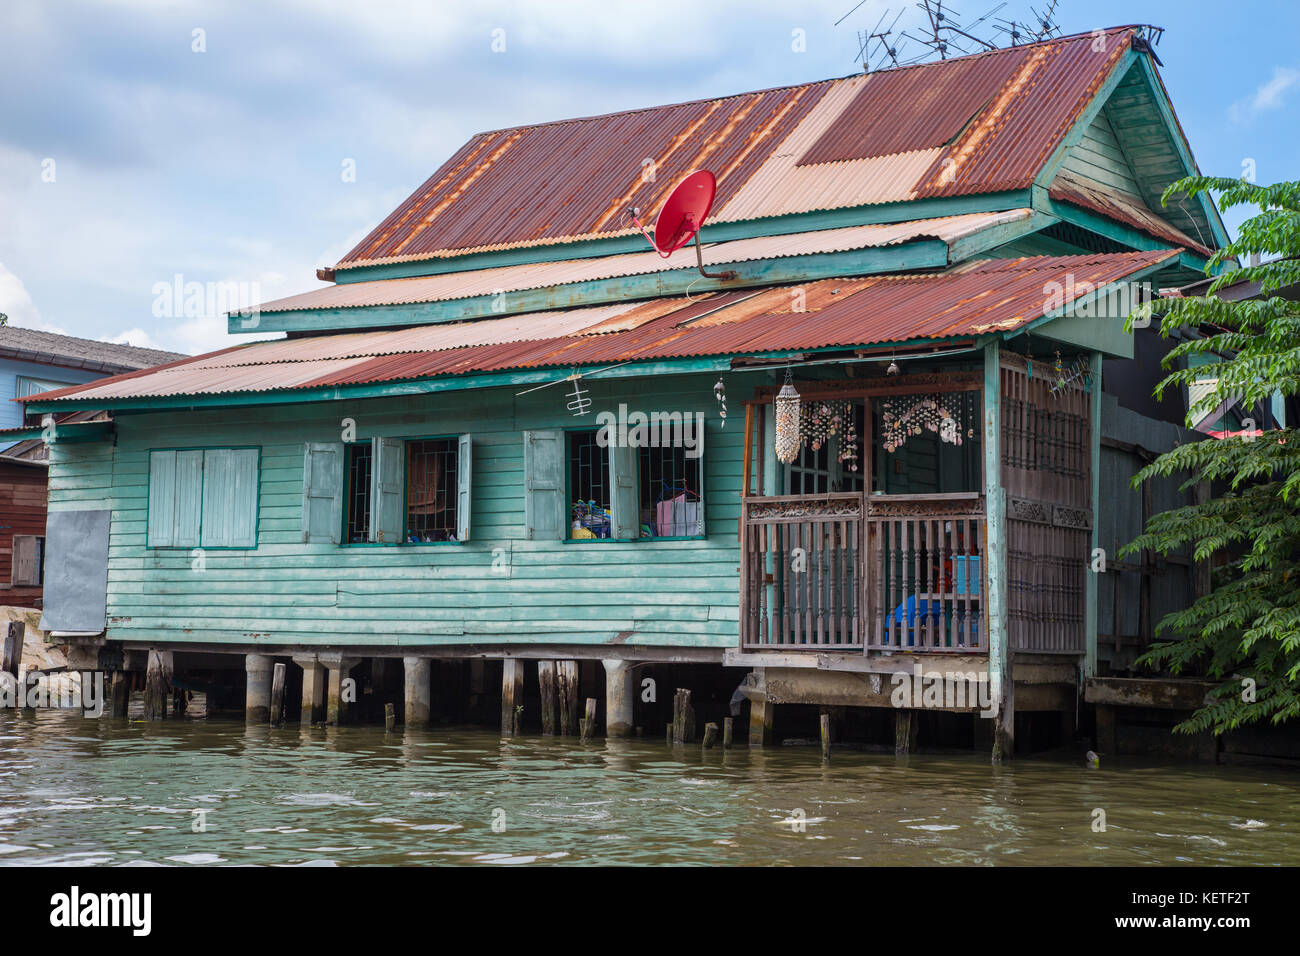 House on stilts in the Chao Phraya river canals, Bangkok, Thailand - Stock Image